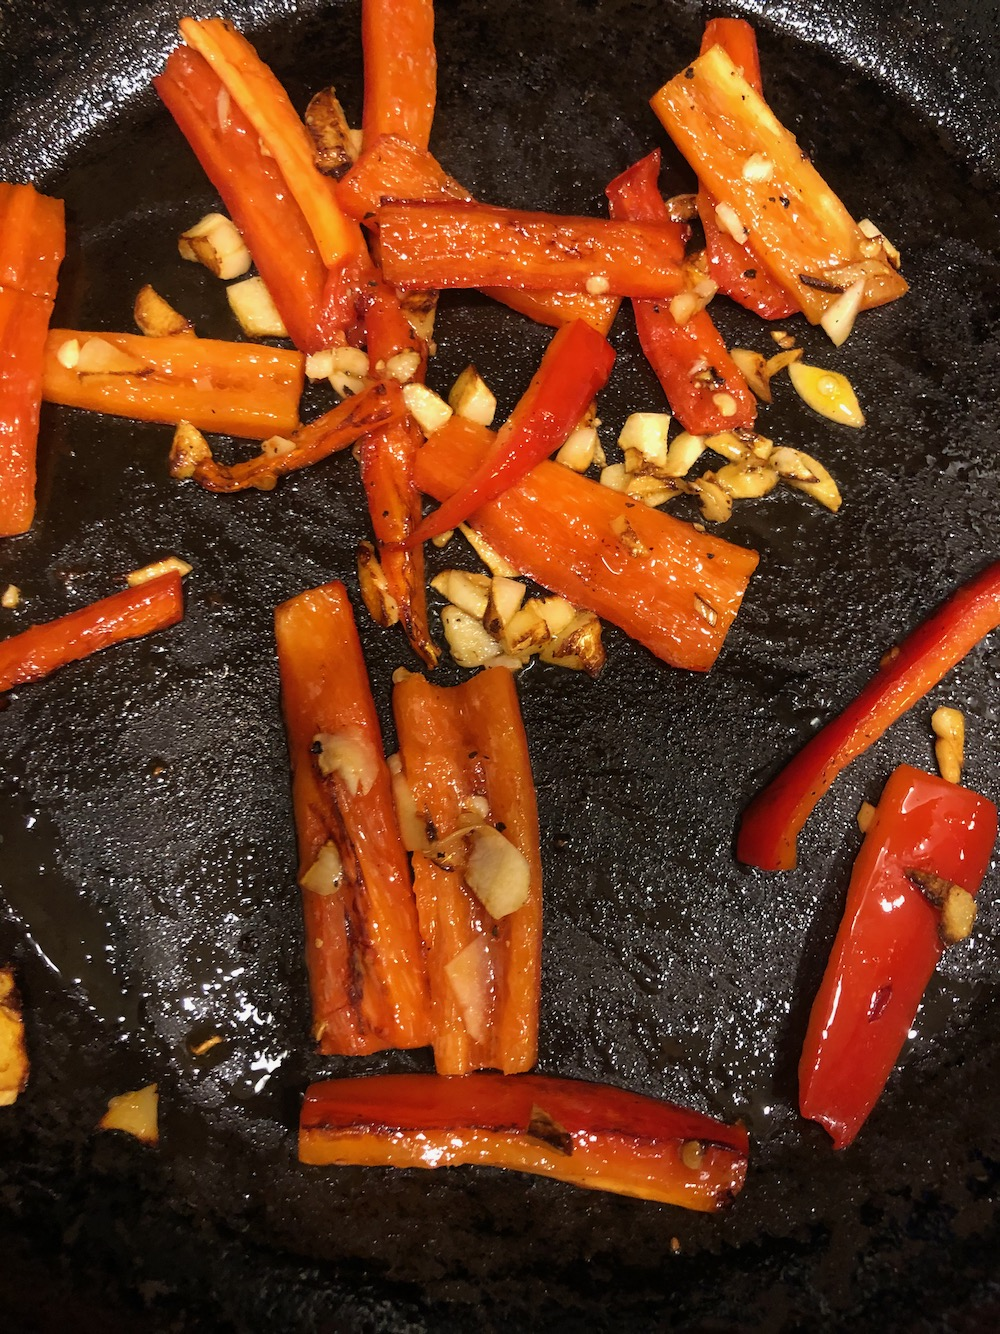 Sautéing the red pepper with garlic.